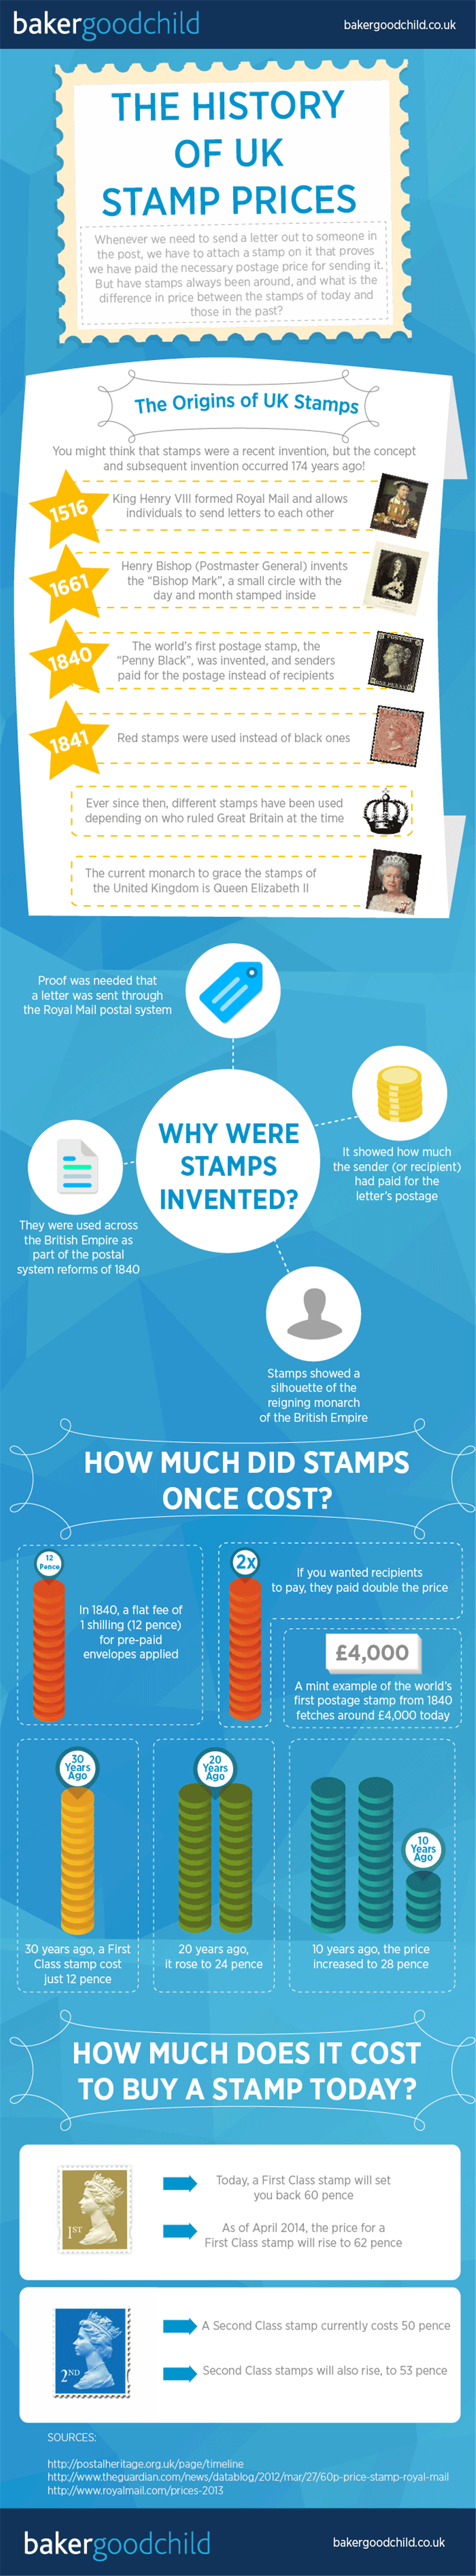 The History of UK Stamp Prices